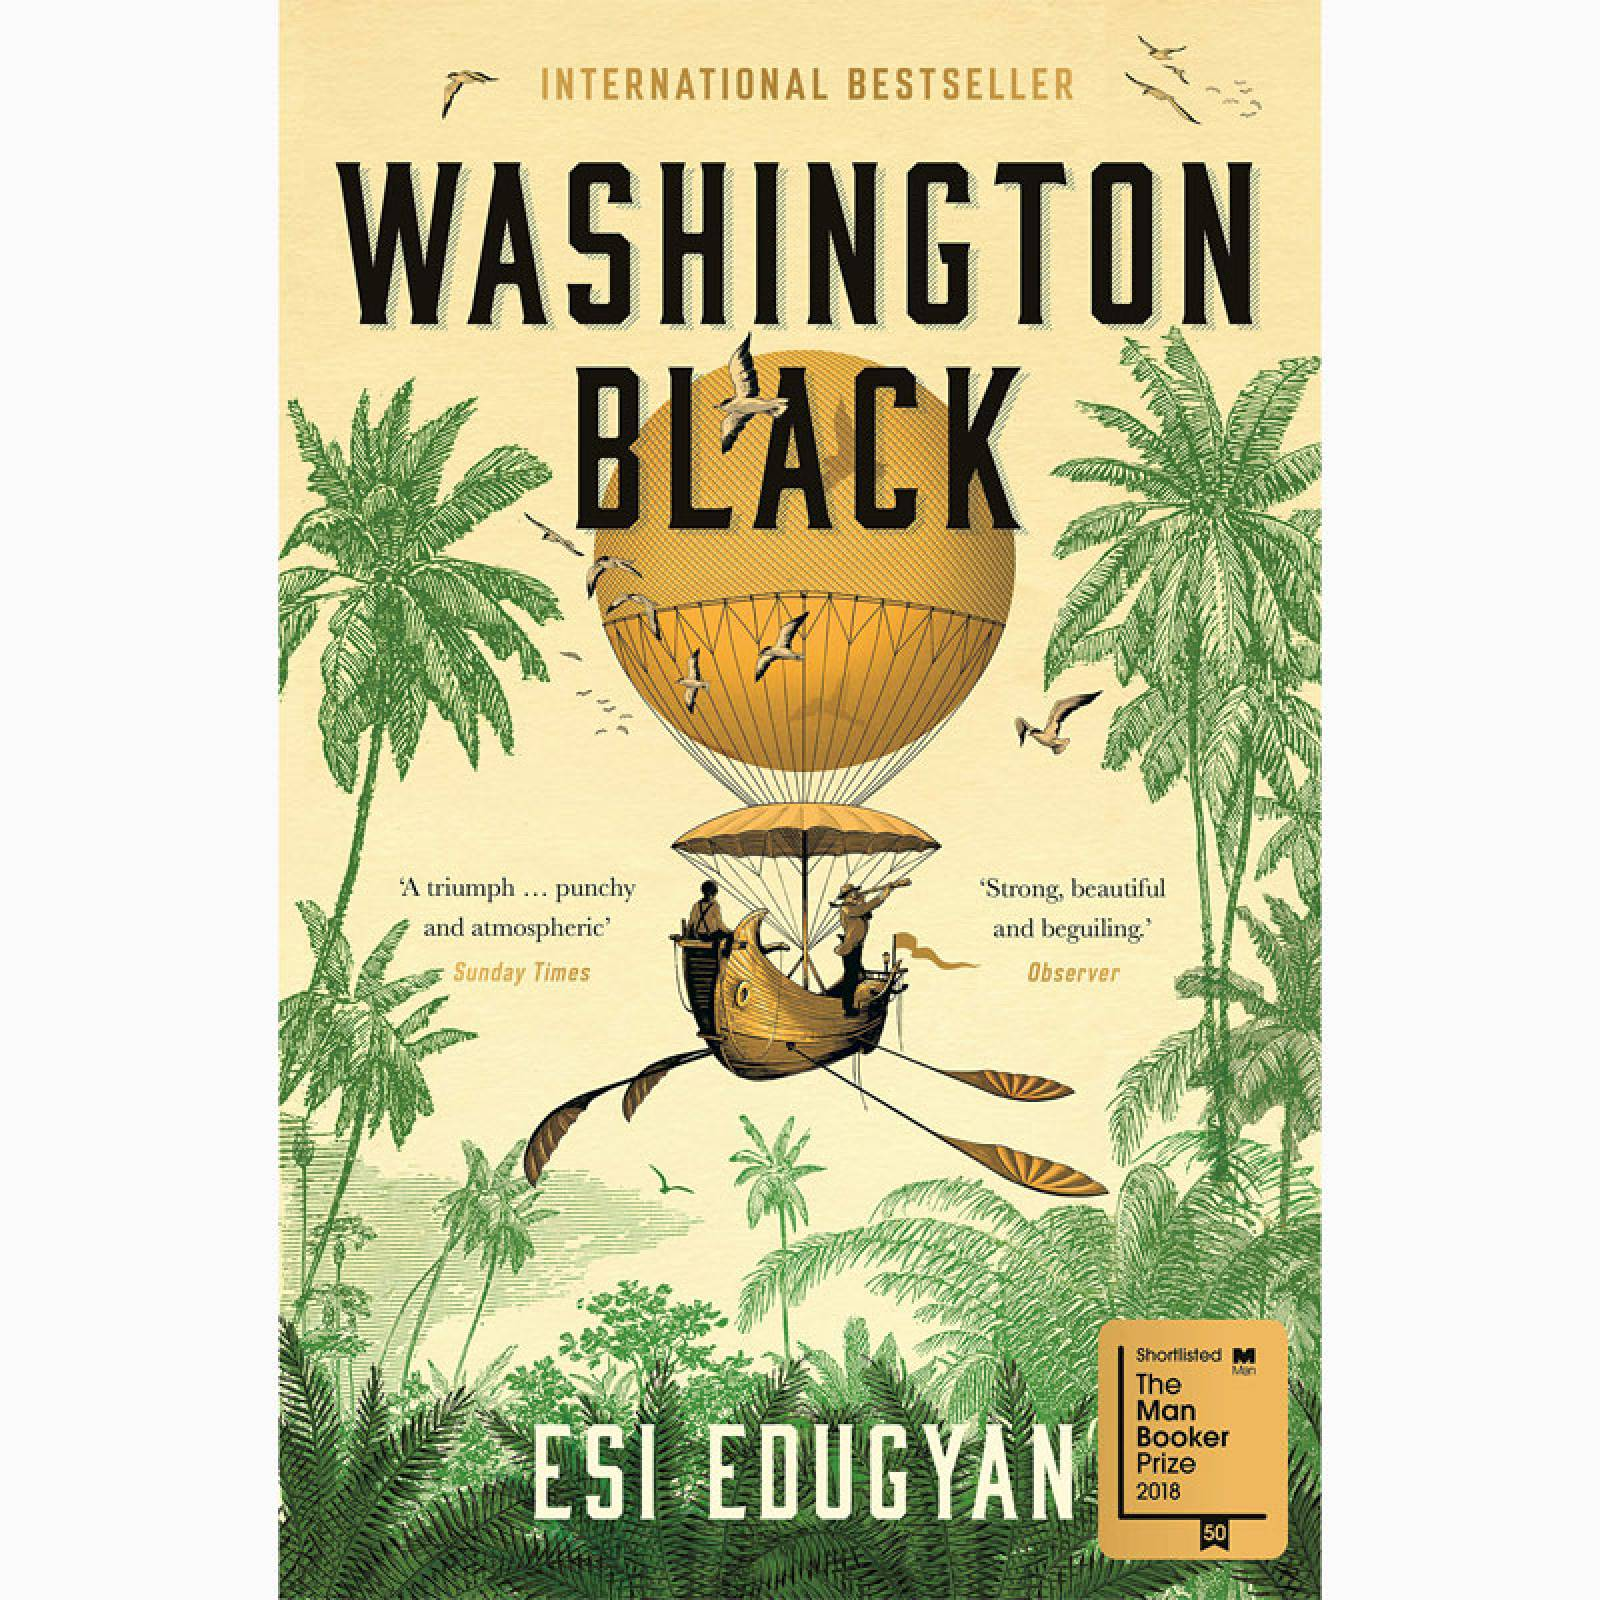 Washington Black - Paperback Book thumbnails